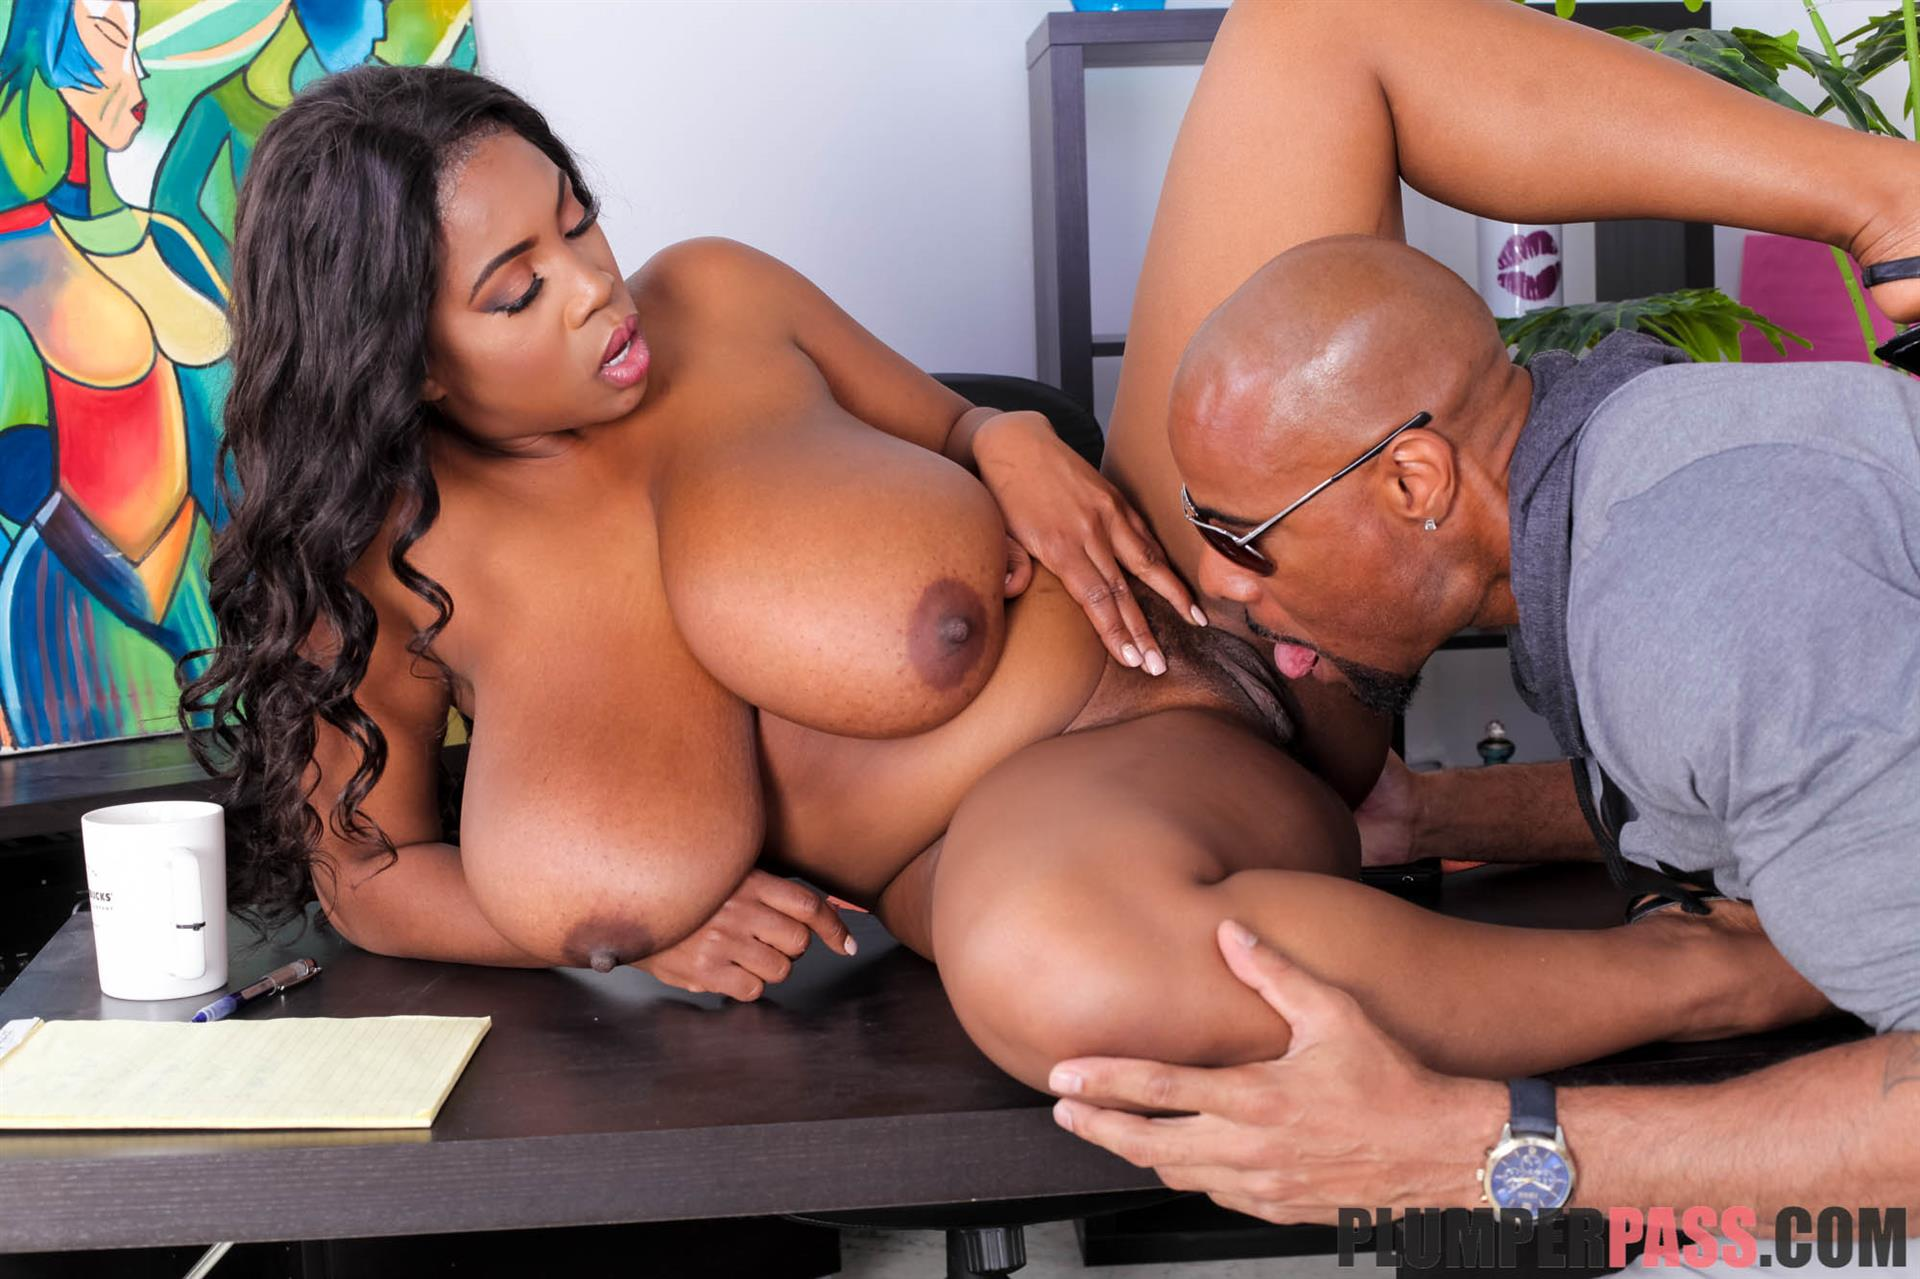 Black chick with big tits fucks a white man with tattoo